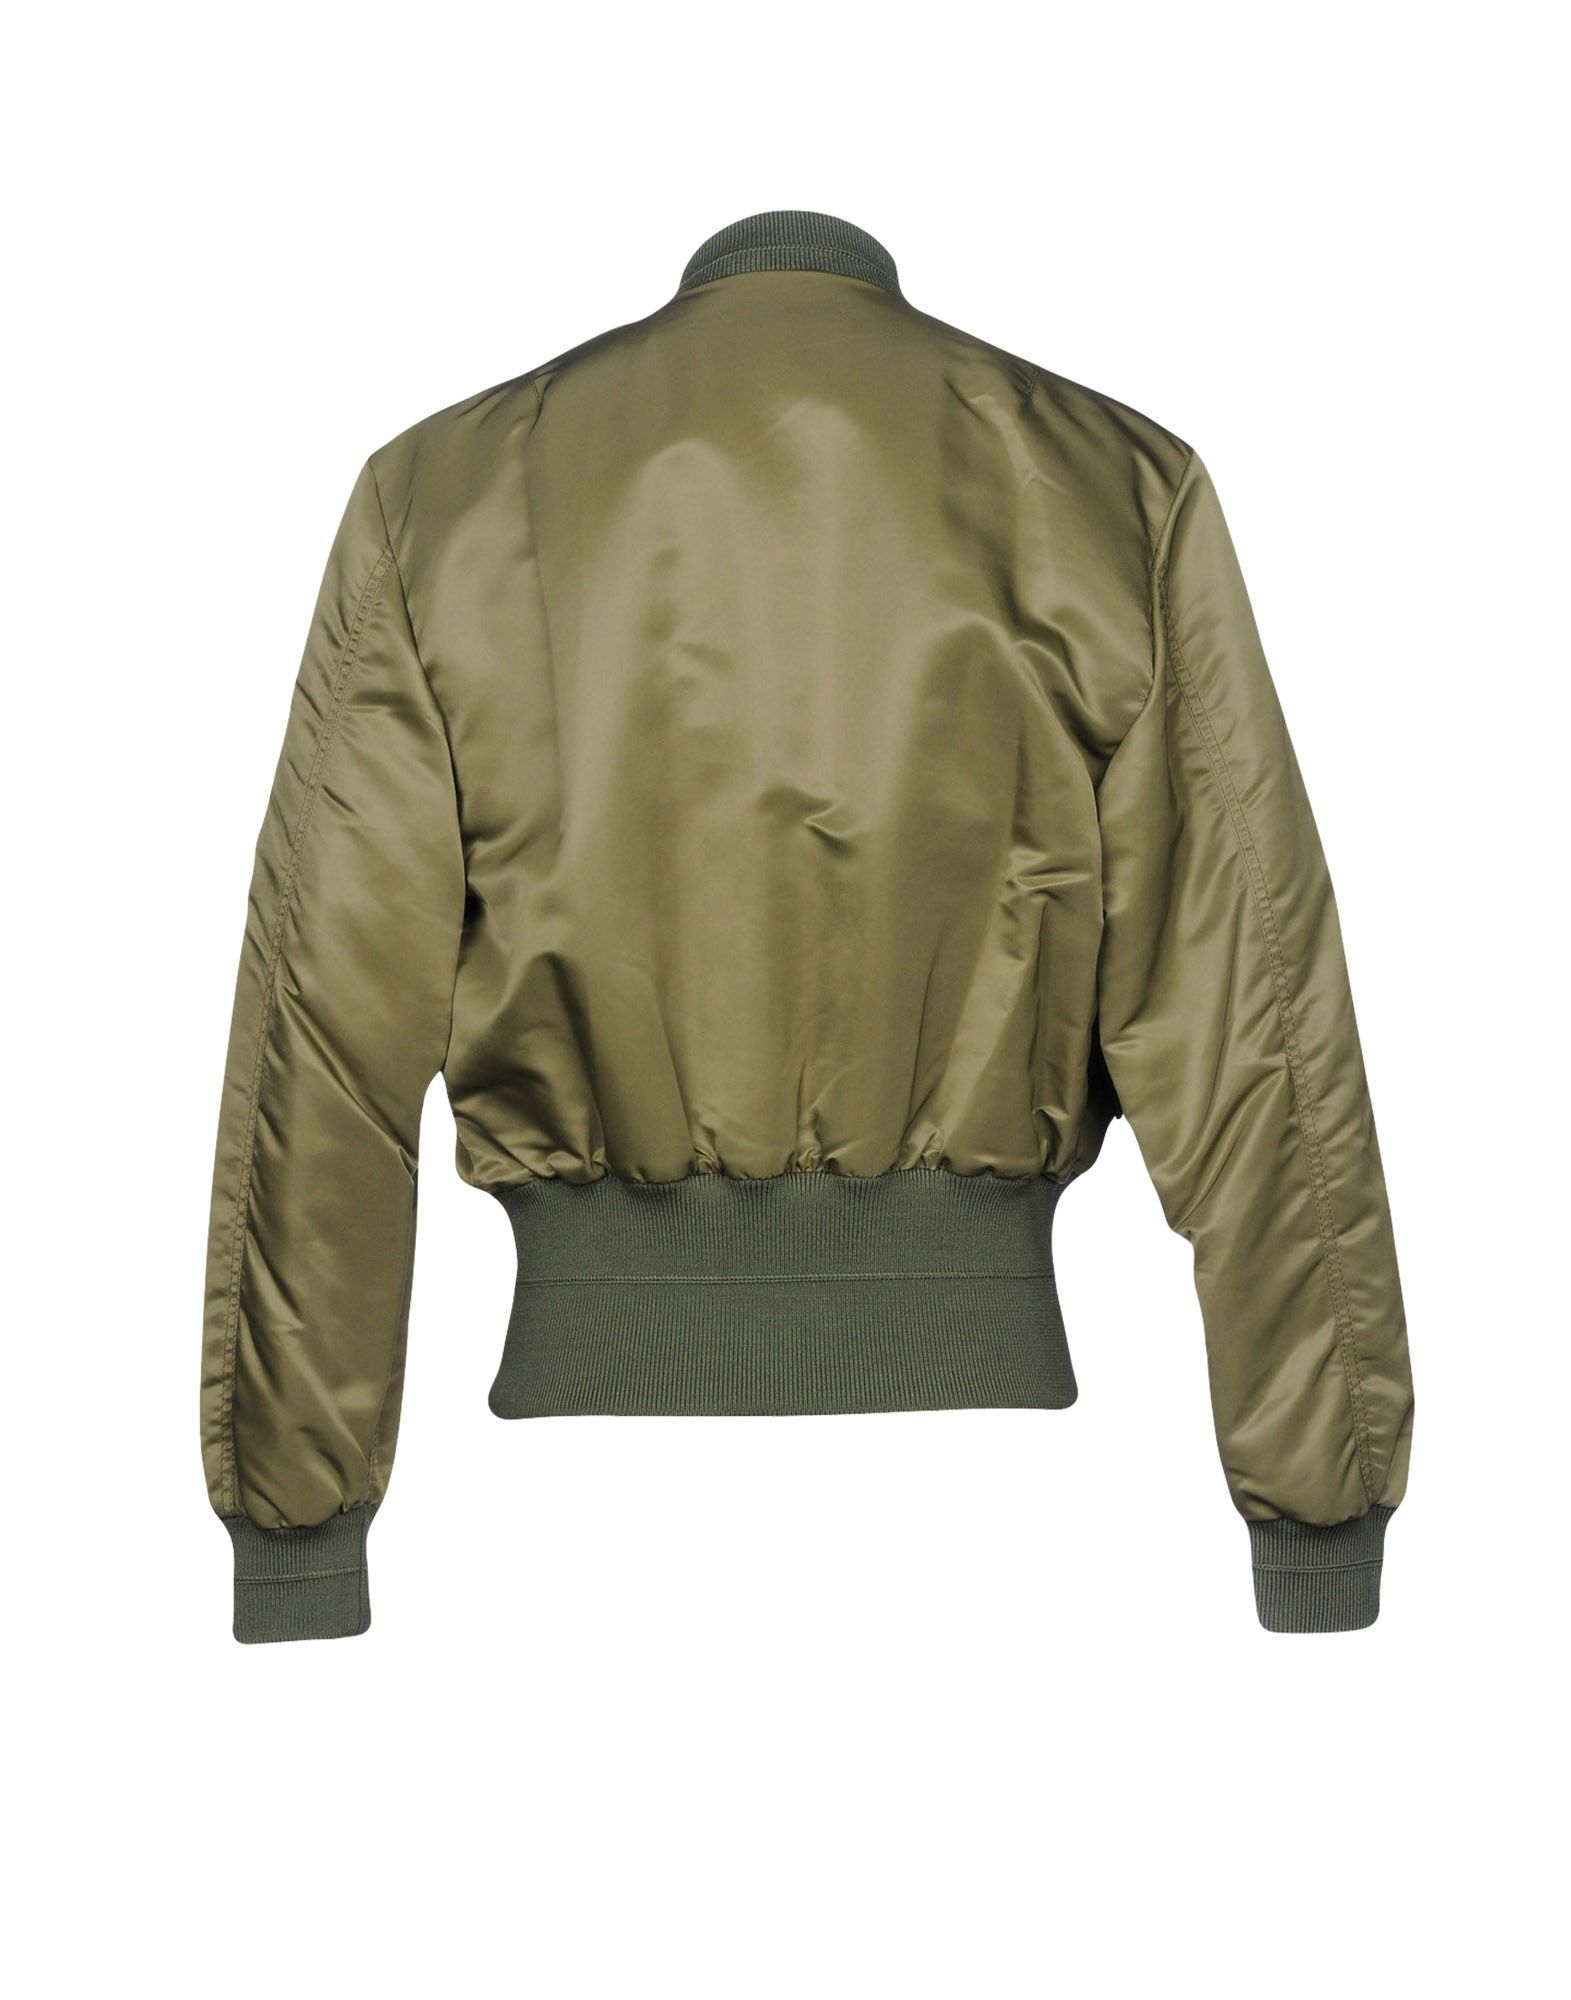 JW Anderson Military Green Jacket